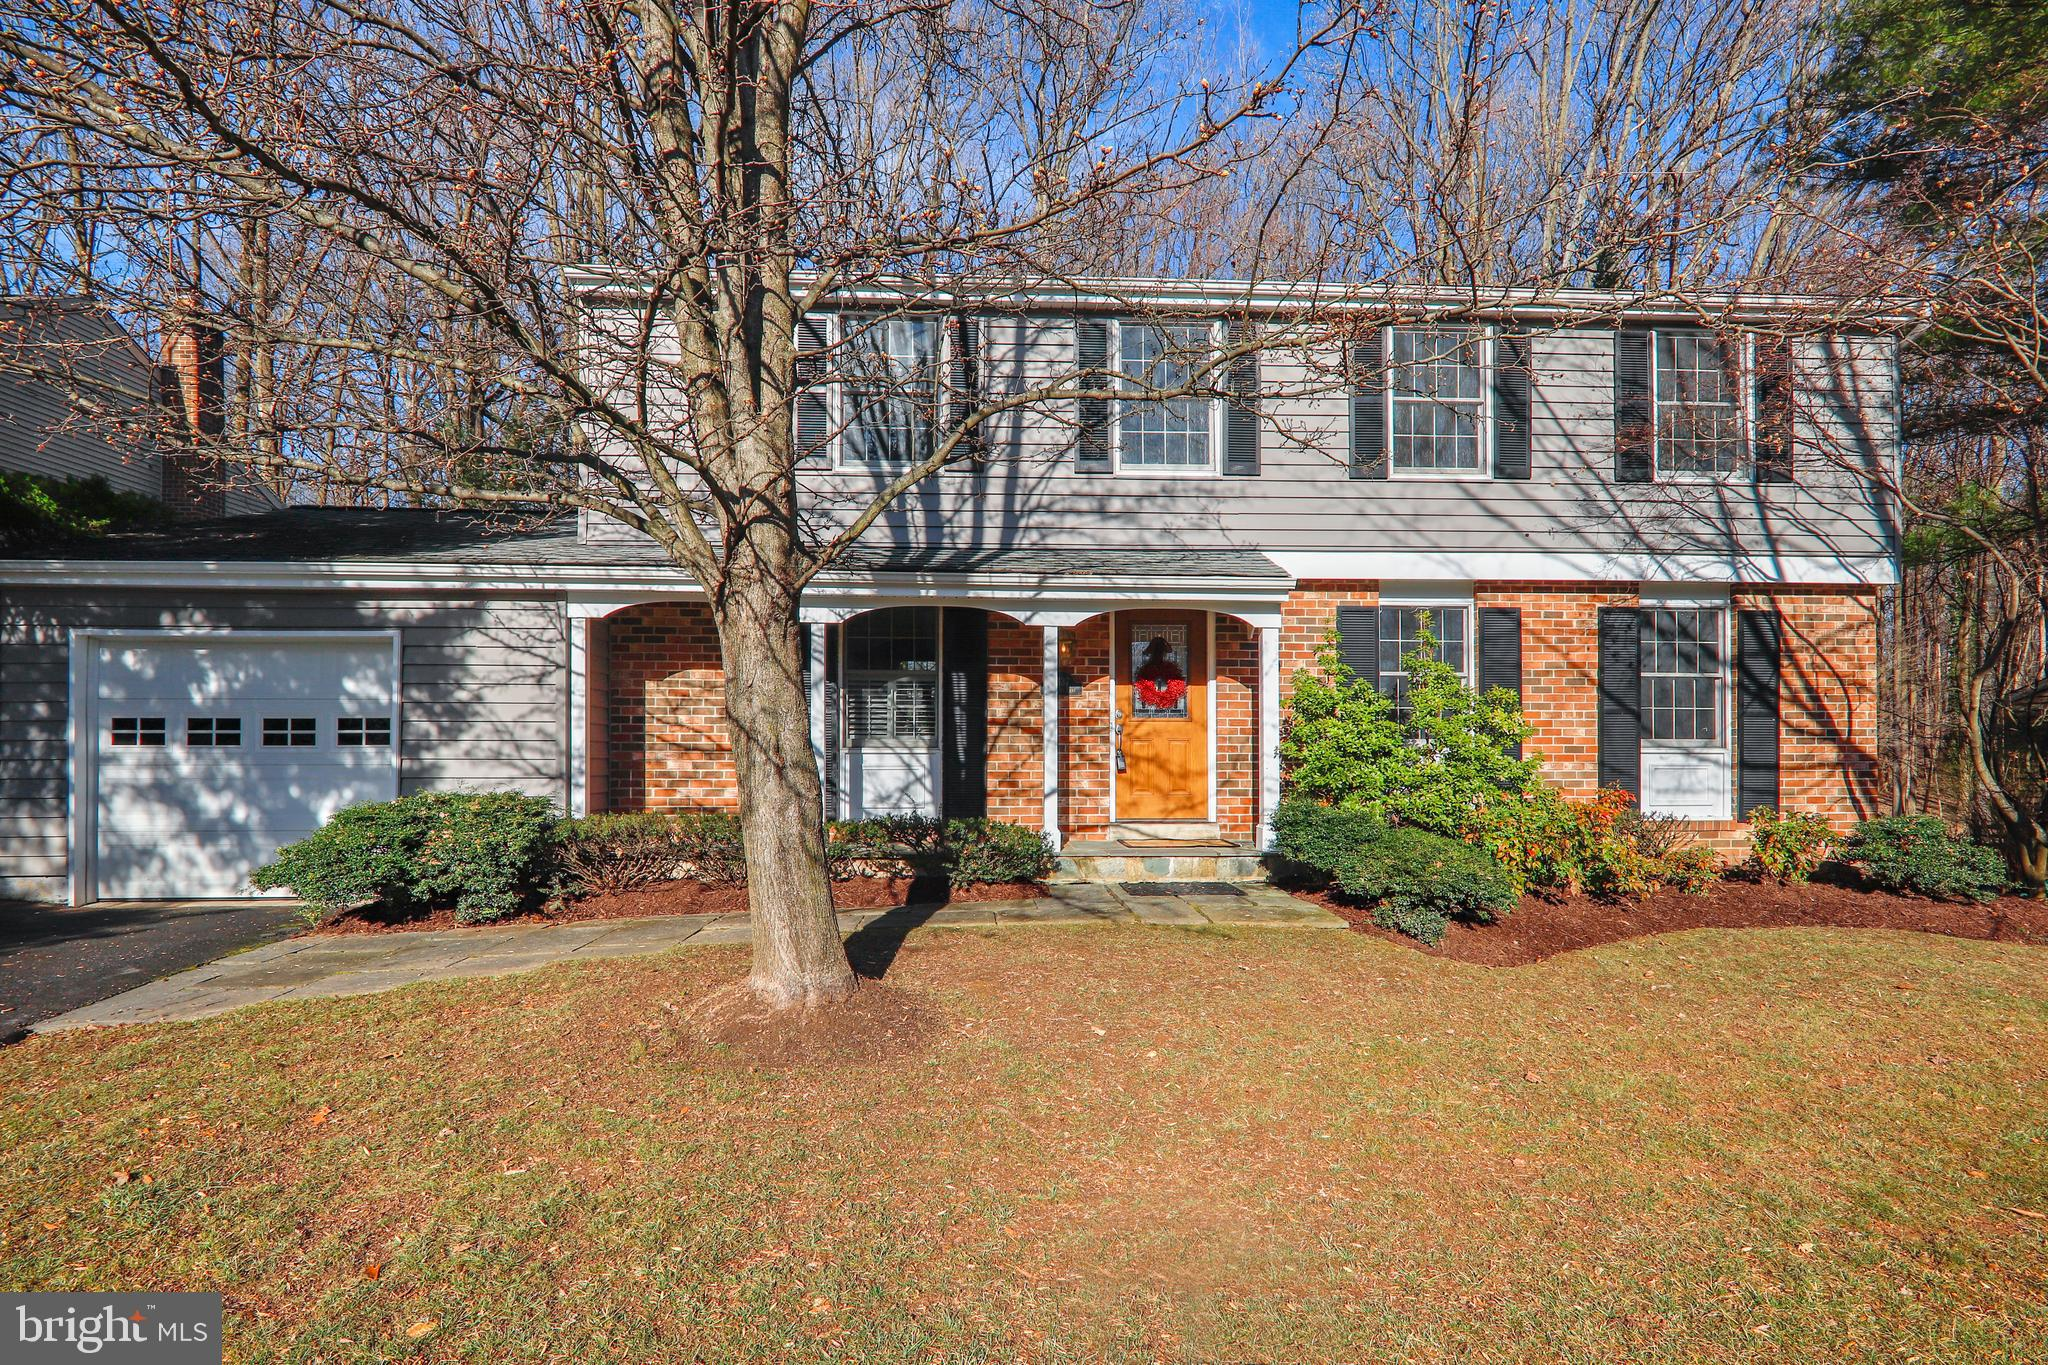 1337 CROCKETT LANE, SILVER SPRING, MD 20904